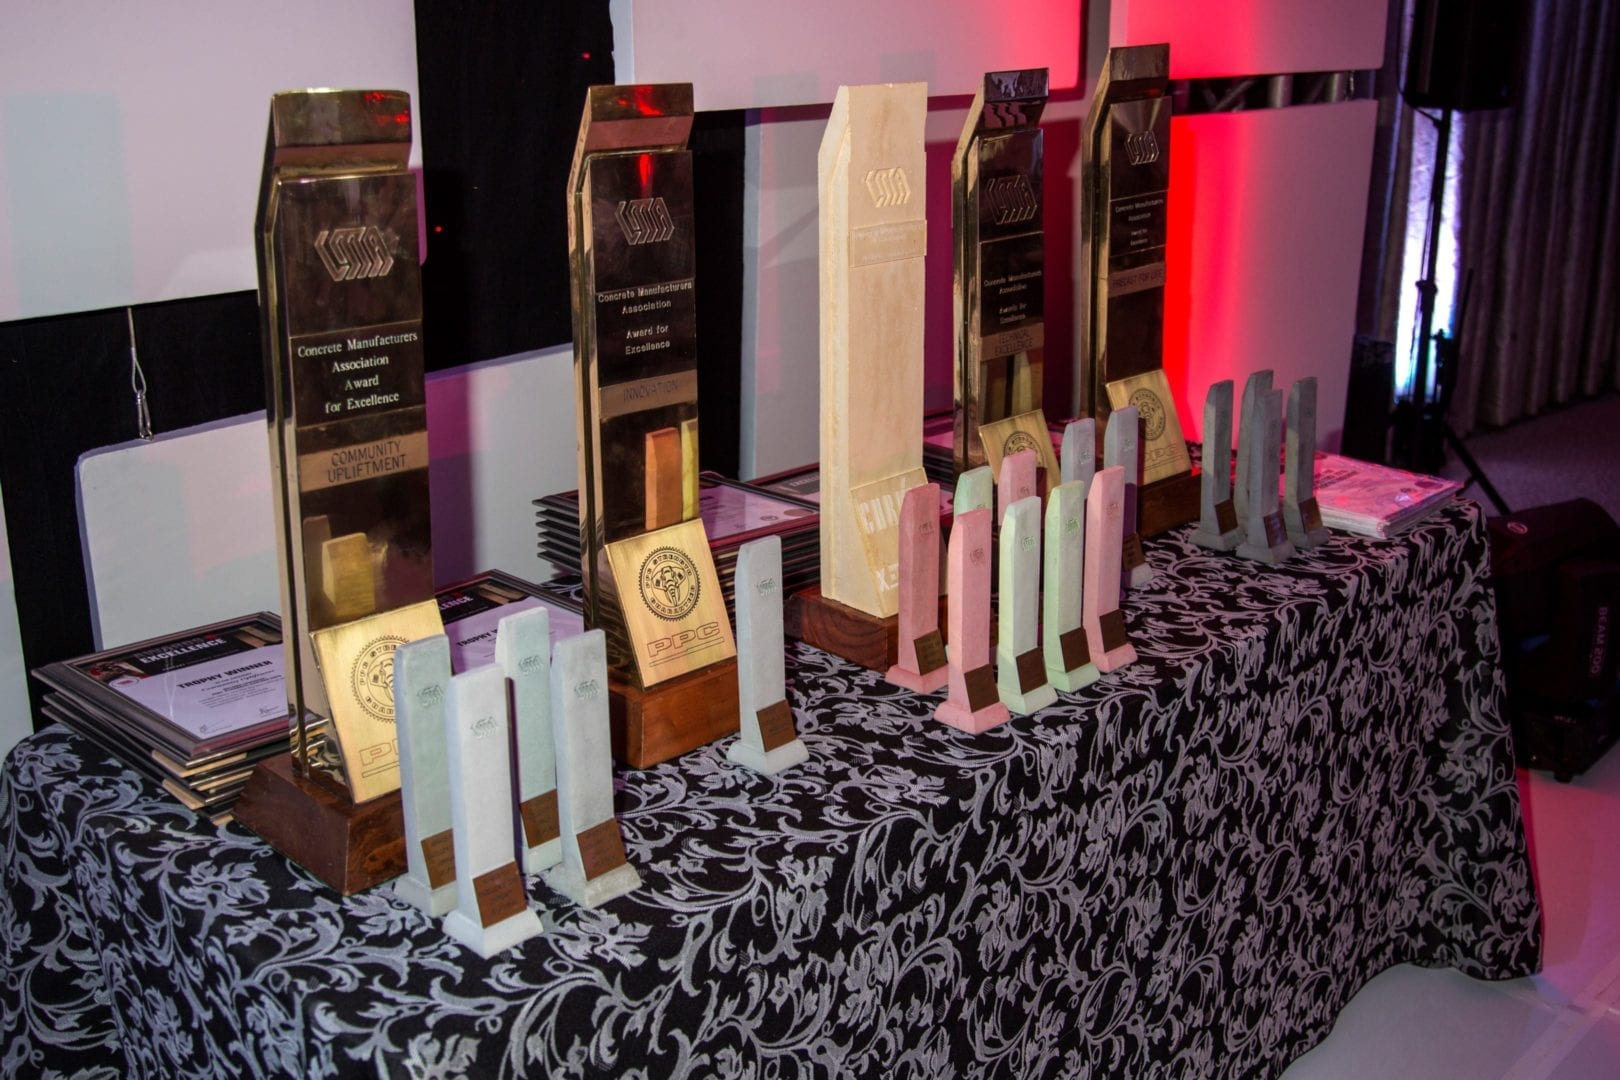 More than 20 awards will be handed out at this year's Concrete Manufacturers Association's (CMA) biannual Awards for Excellence.